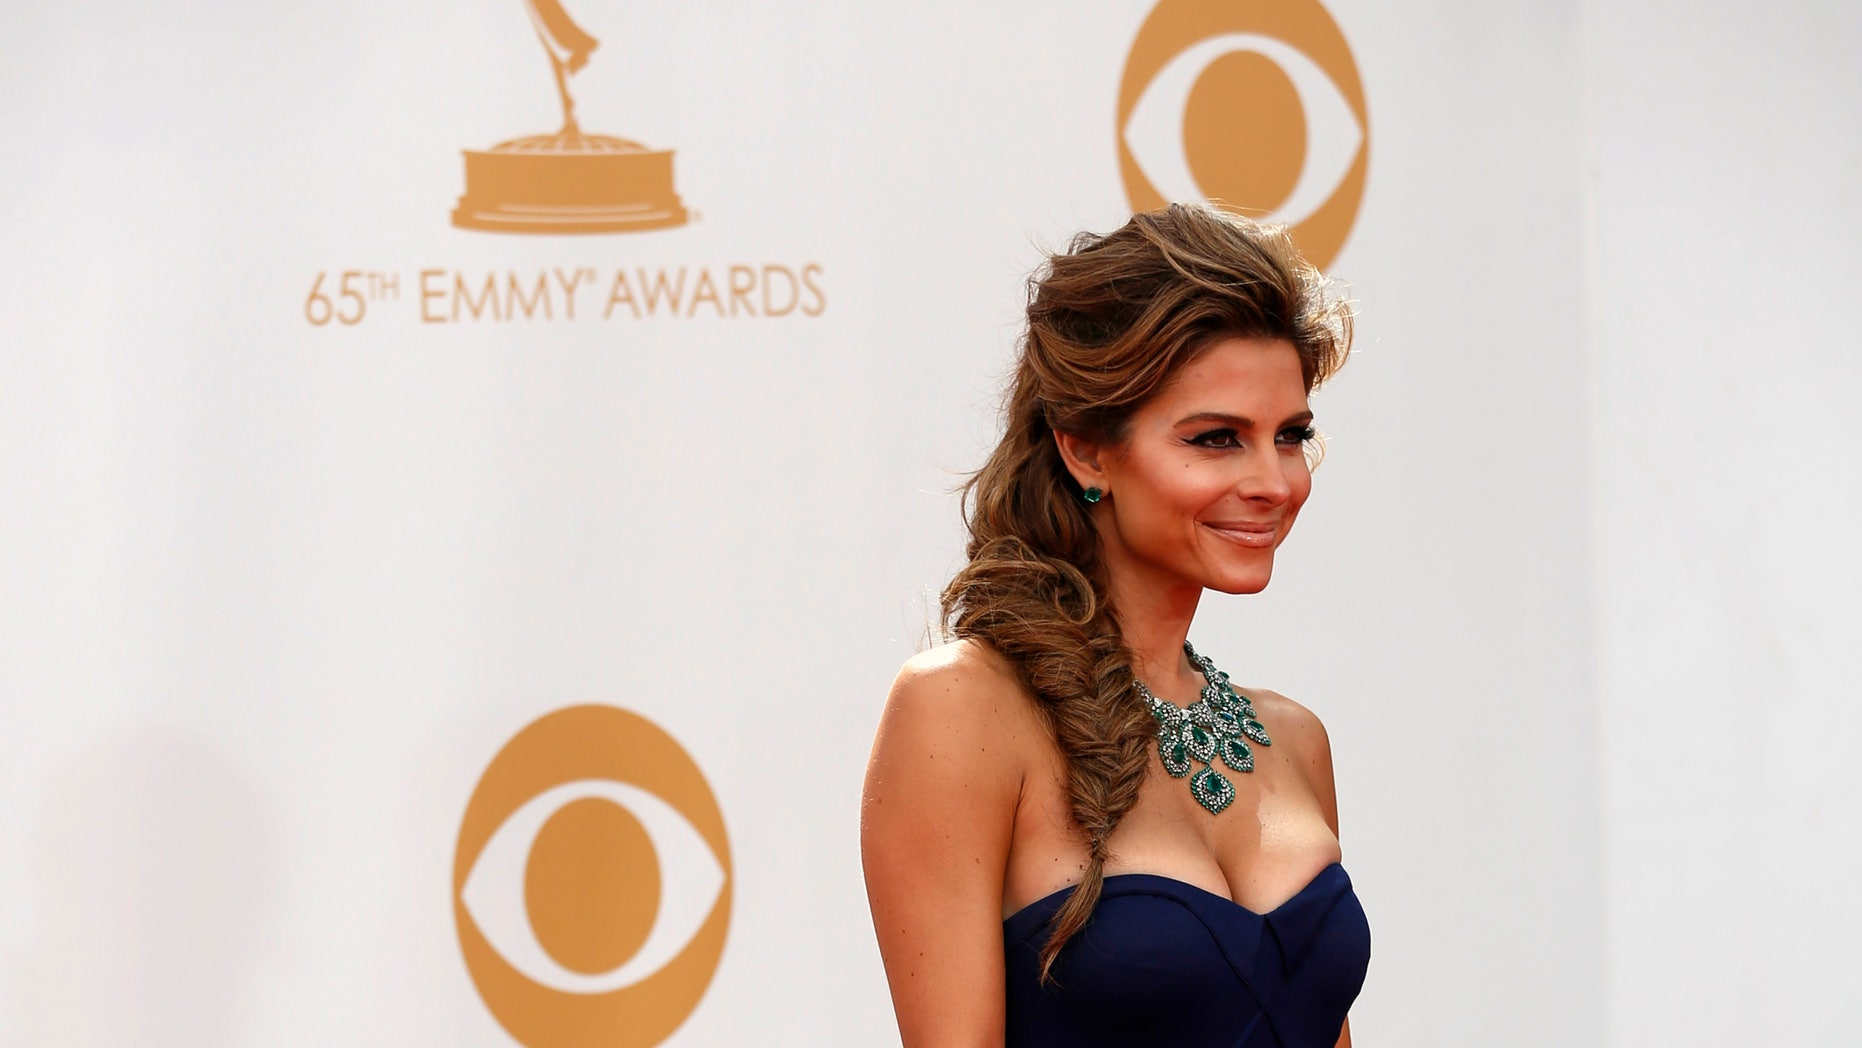 September 22, 2013. Television personality Maria Menounos arrives at the 65th Primetime Emmy Awards in Los Angeles.